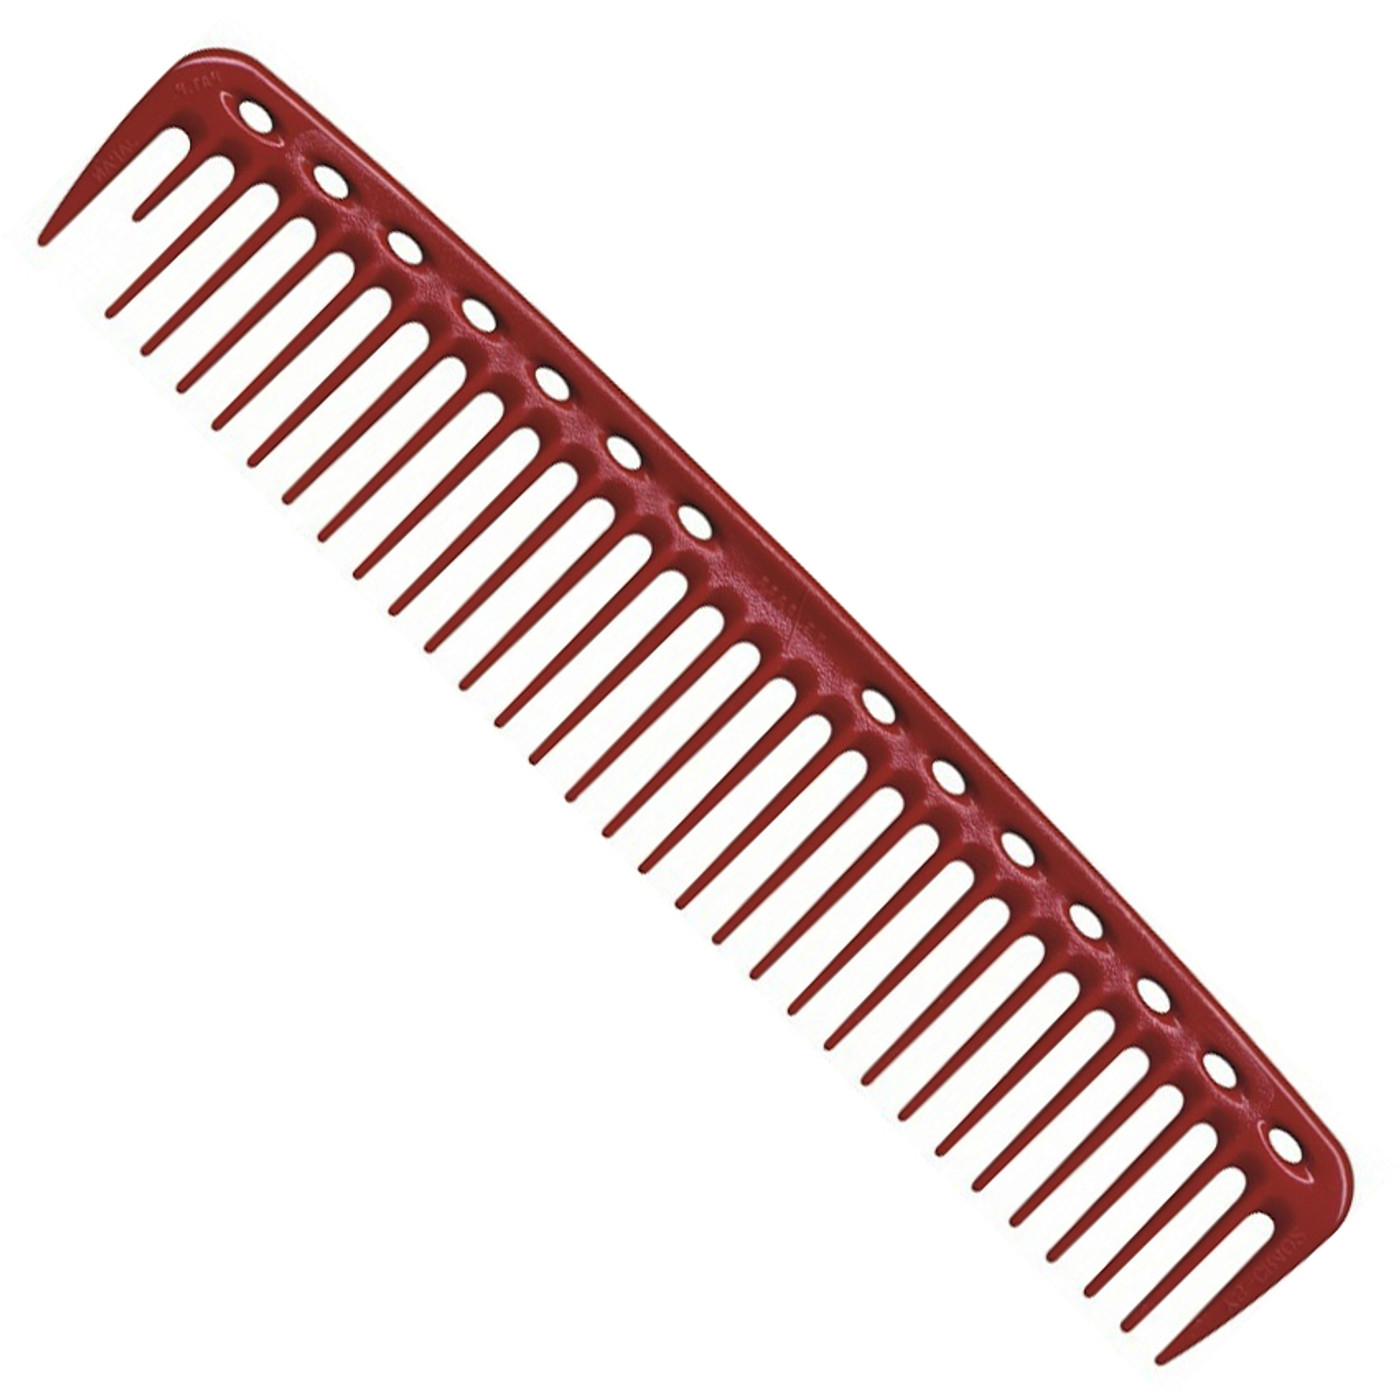 YS Park 402 Big Quick Cutting Comb - Red